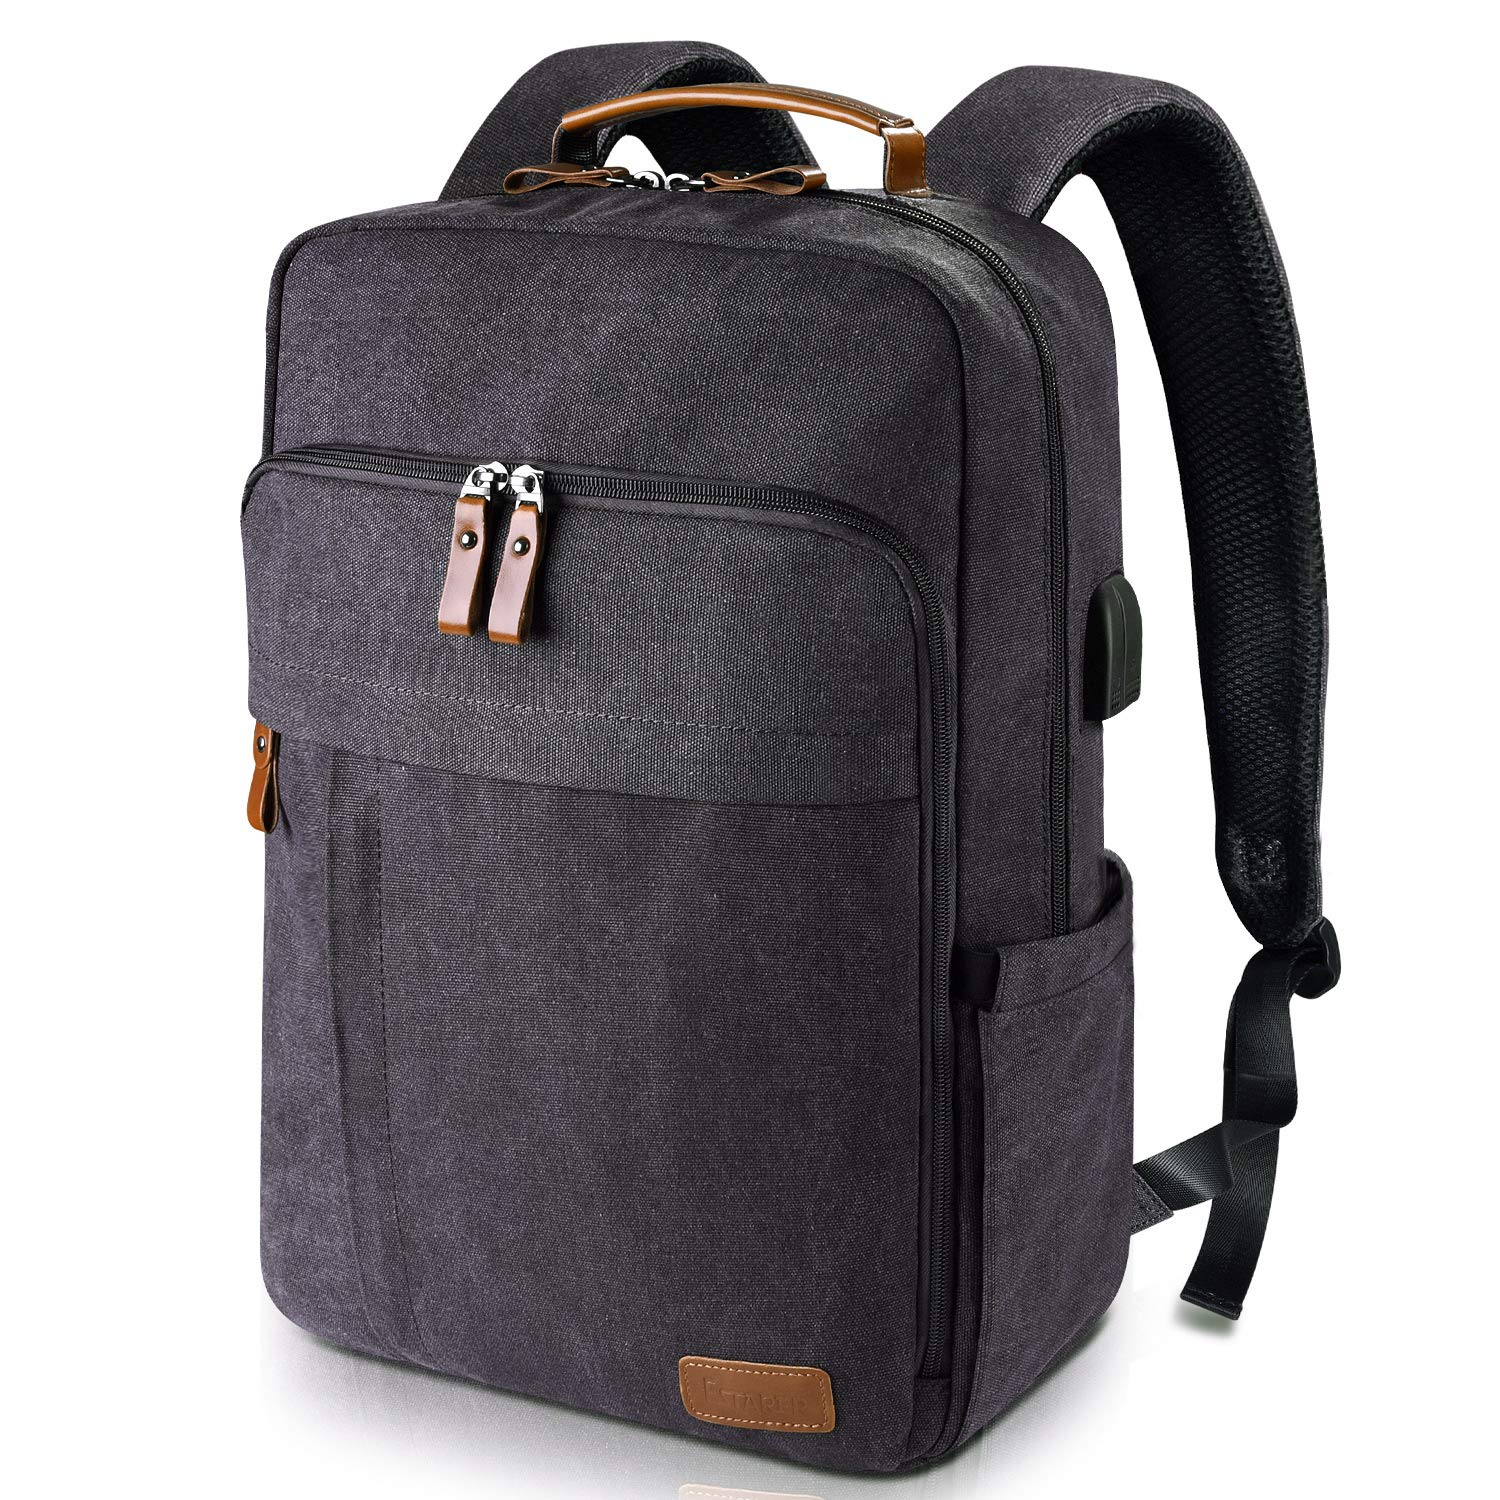 e3d785b674a3 Amazon.com: Estarer Laptop Backpack w/USB Charging Port for Men Women,  Water Resistant Canvas Backpack School Office Work Fit Most 17-17.3 Inch  Computer: ...